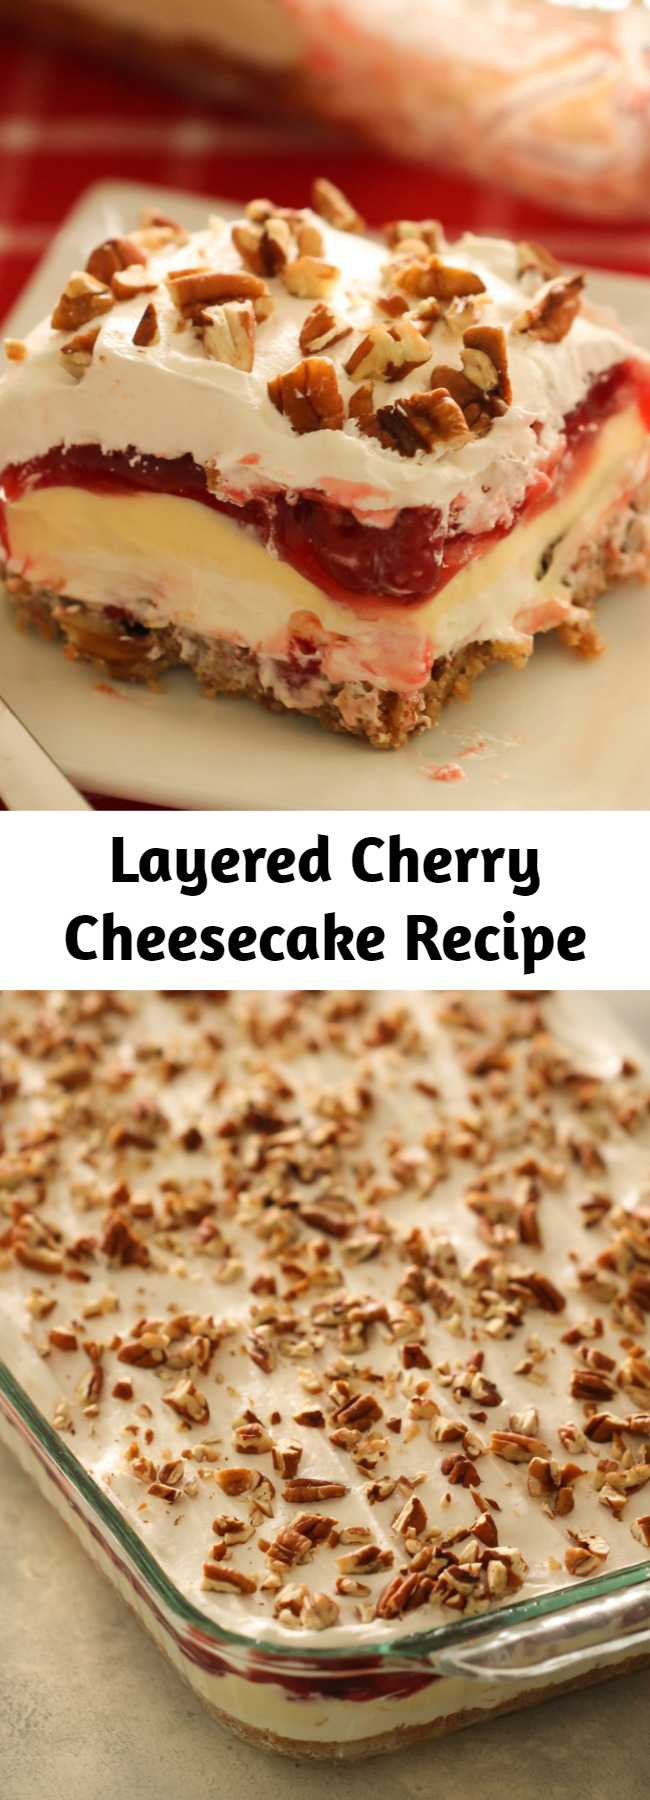 Layered Cherry Cheesecake Recipe - Get ready to enjoy the best, cherry cream cheese lush dessert you have ever tasted. This mind-blowing layered cherry cheesecake will have you coming back for more and friends asking for the recipe!